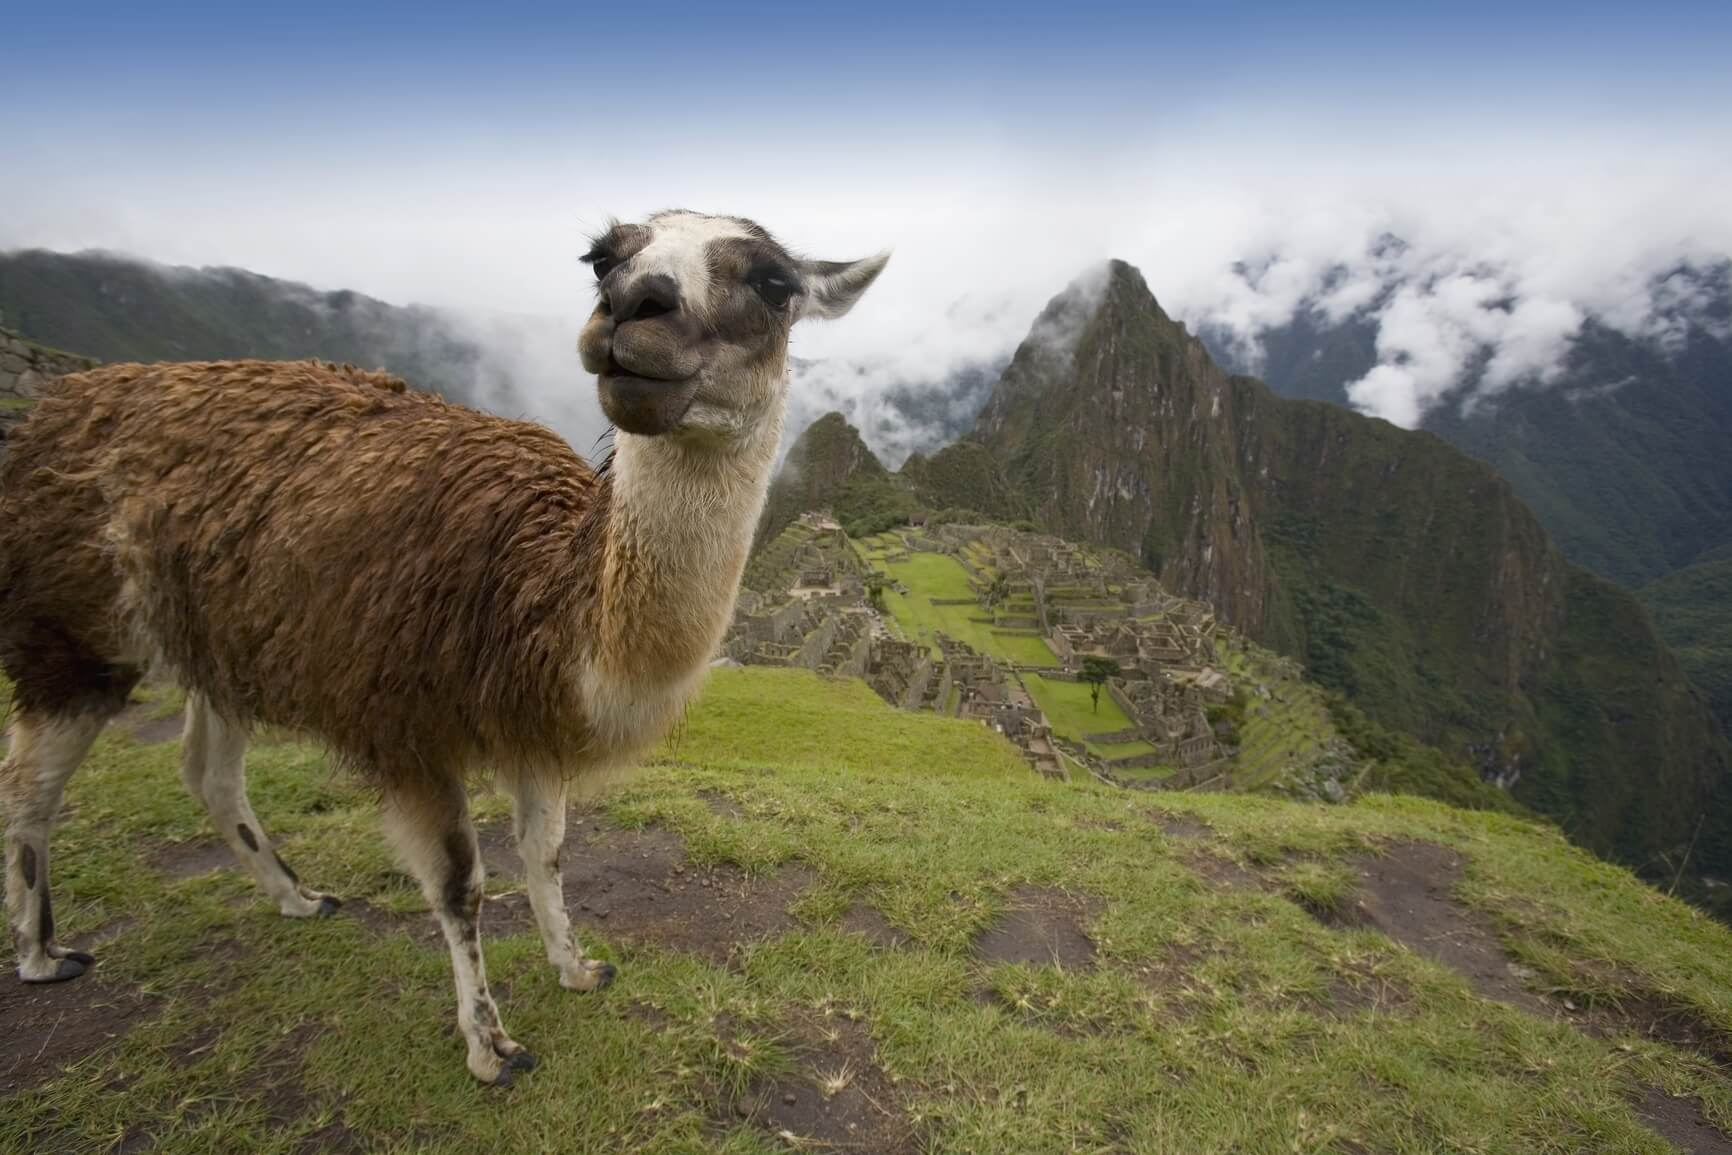 HOT!! New York to Lima, Peru for only $230 roundtrip (Sep-Jan dates)